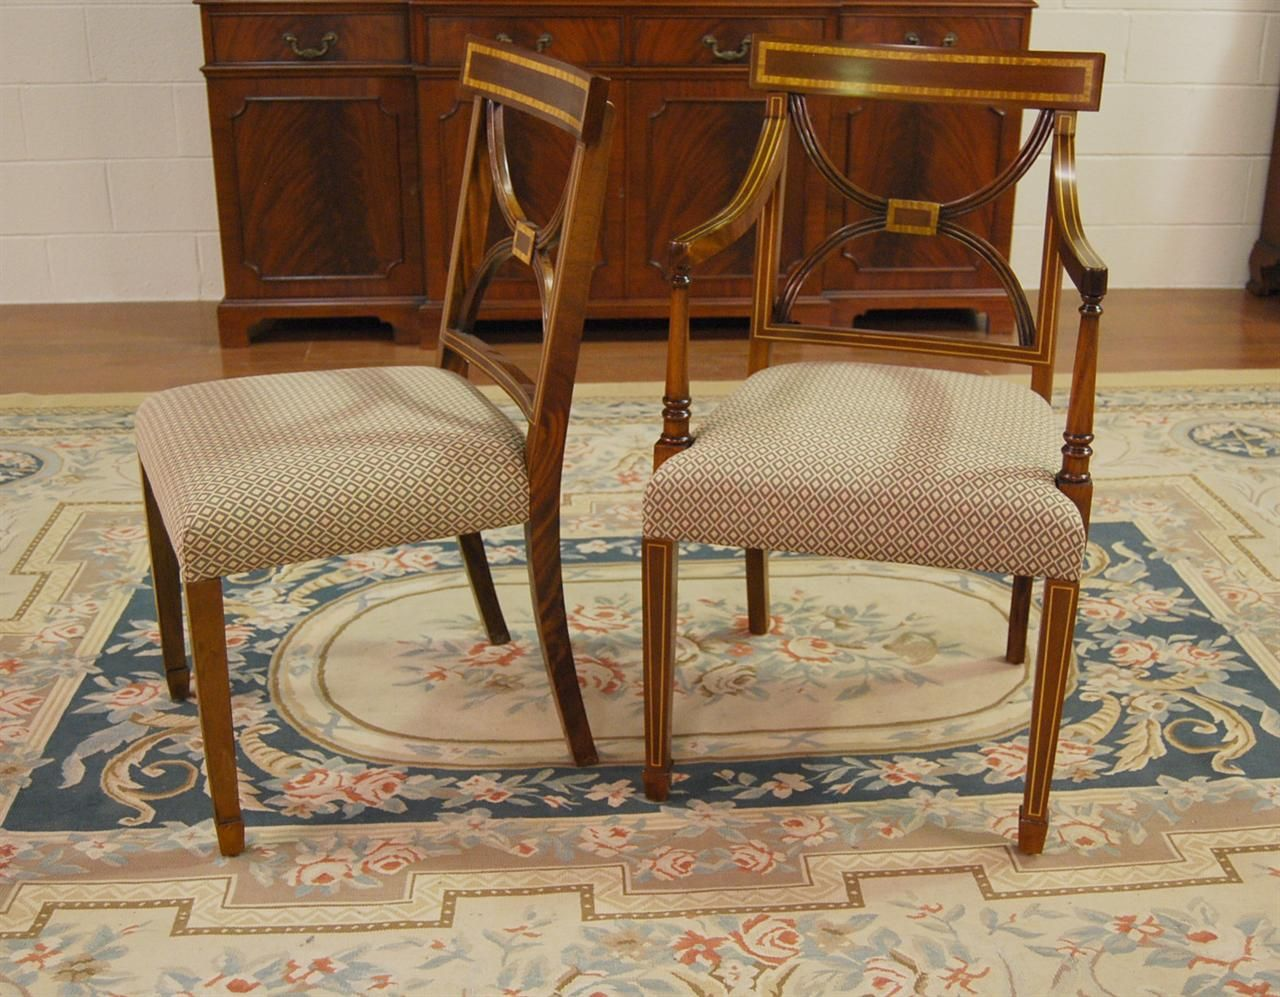 mahogany dining chairs | chairs design ideas | places to visit